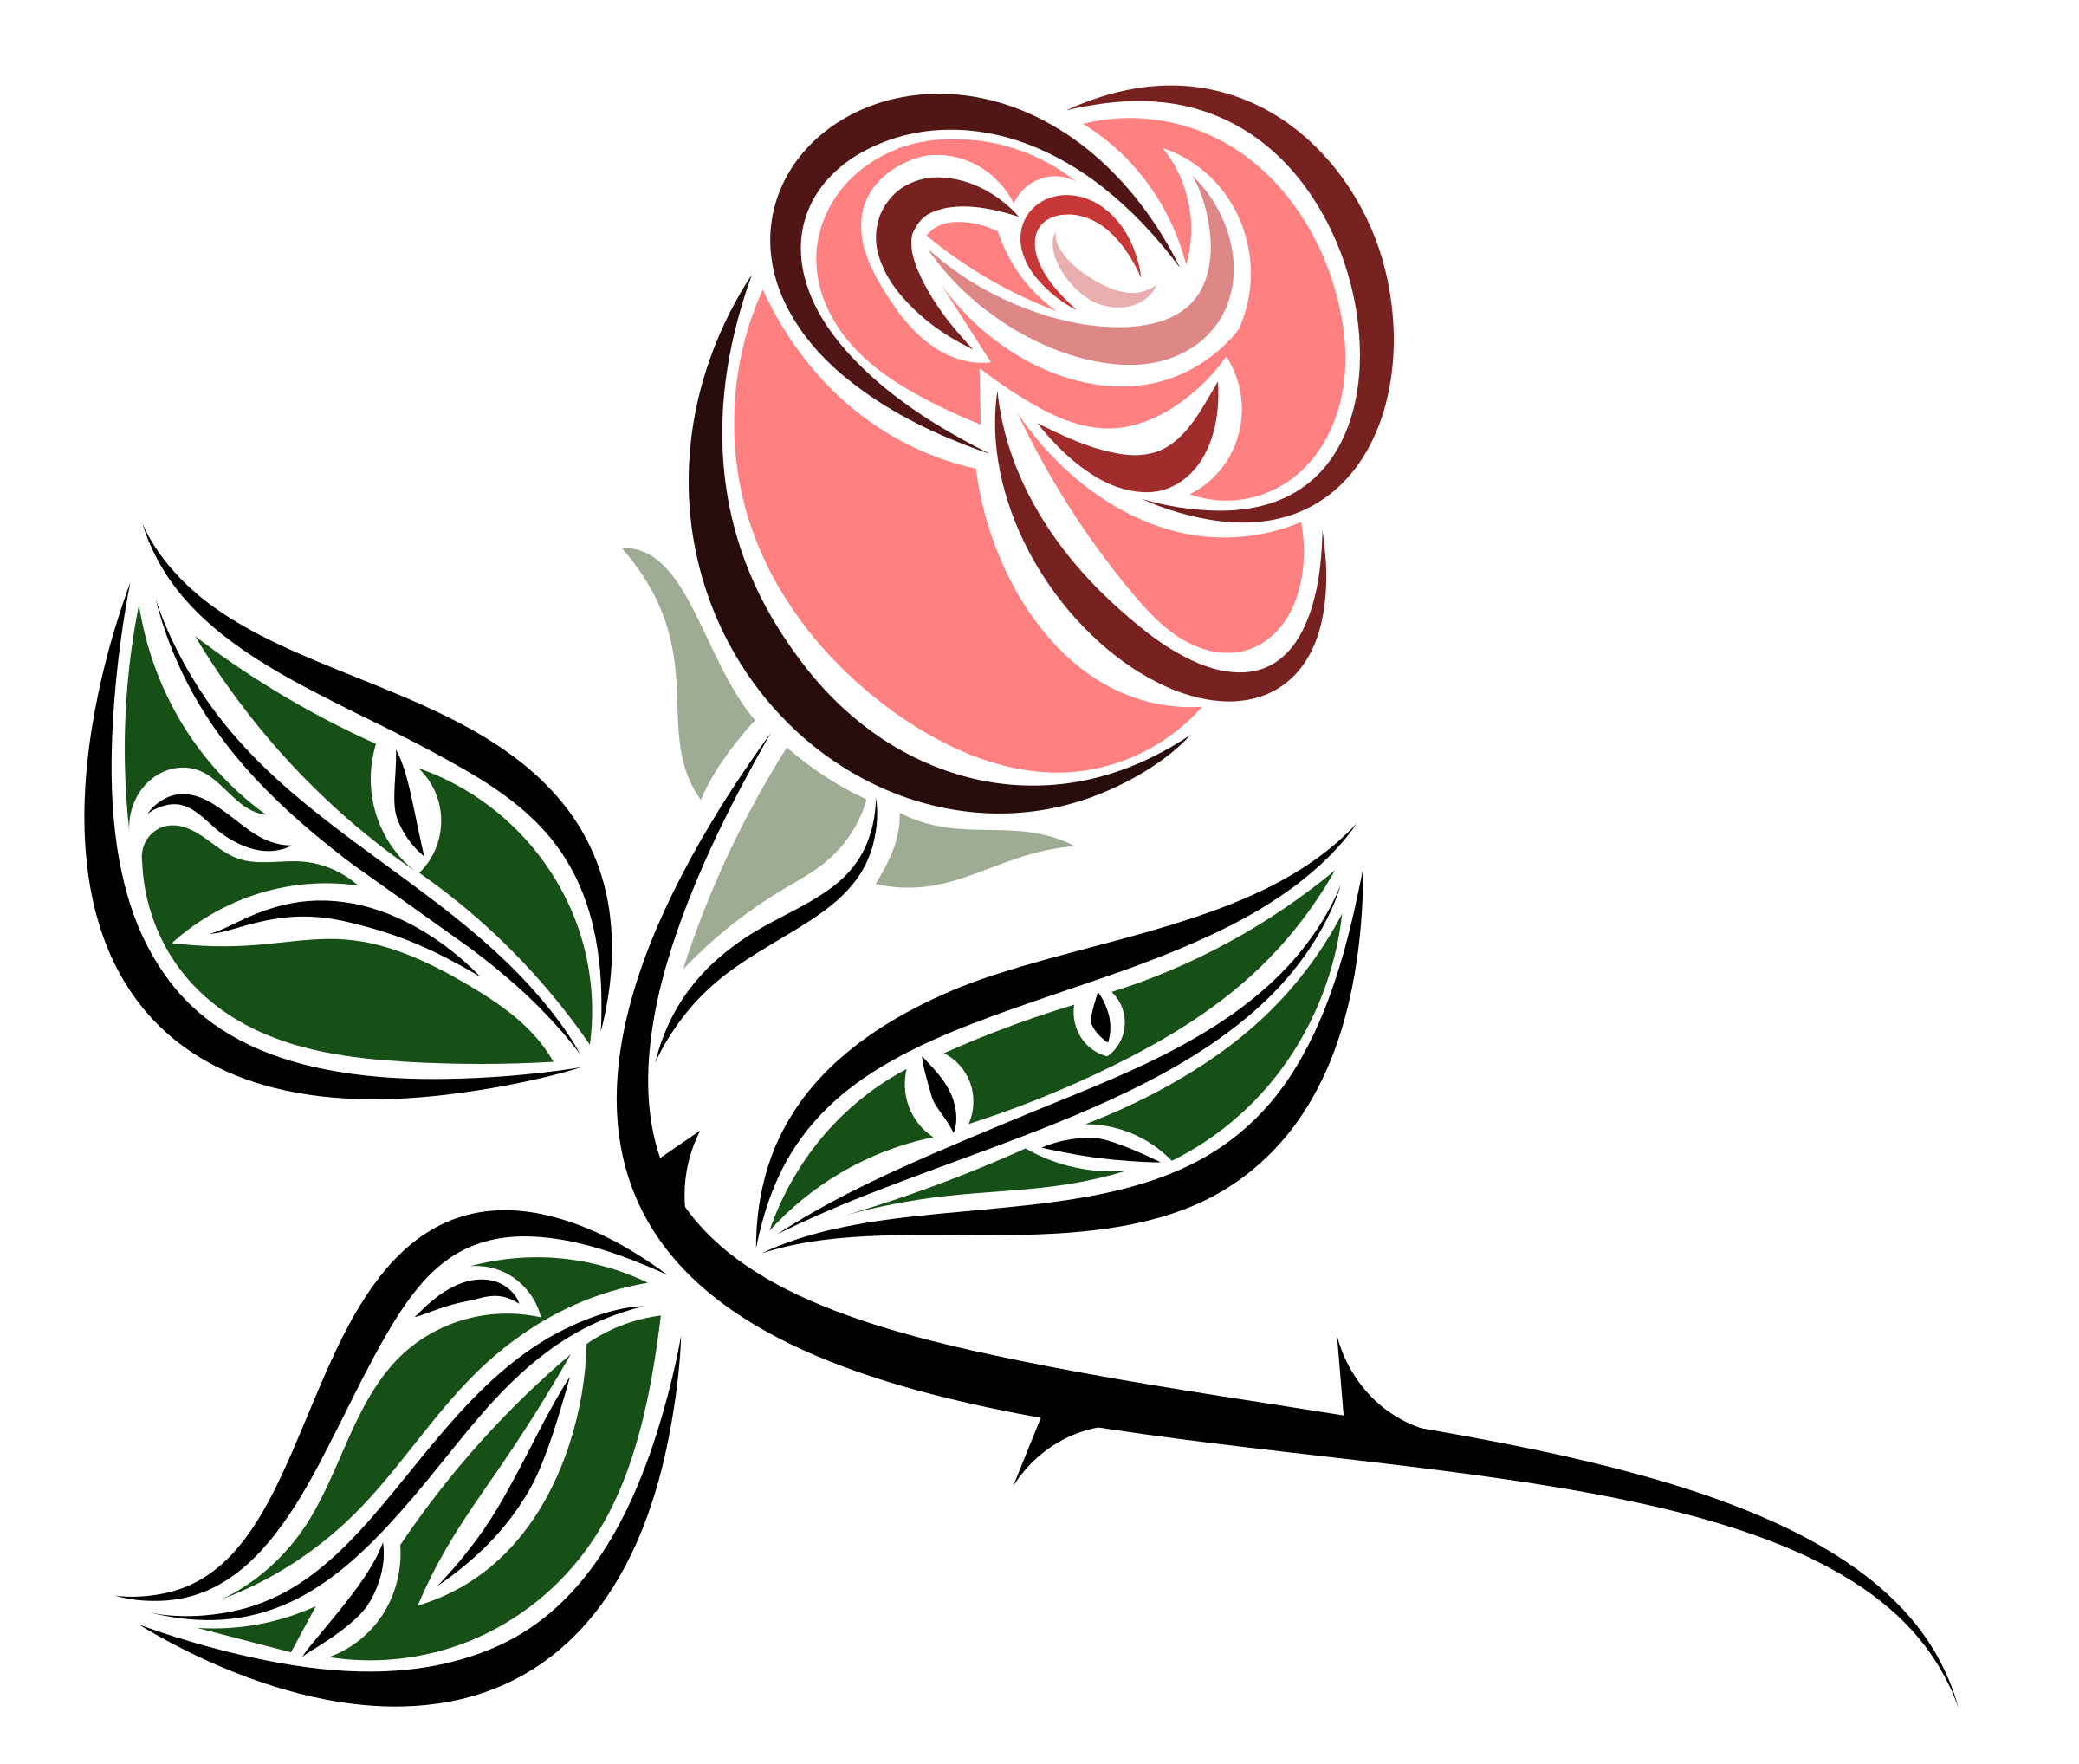 Rose clipart leaf. Stylized